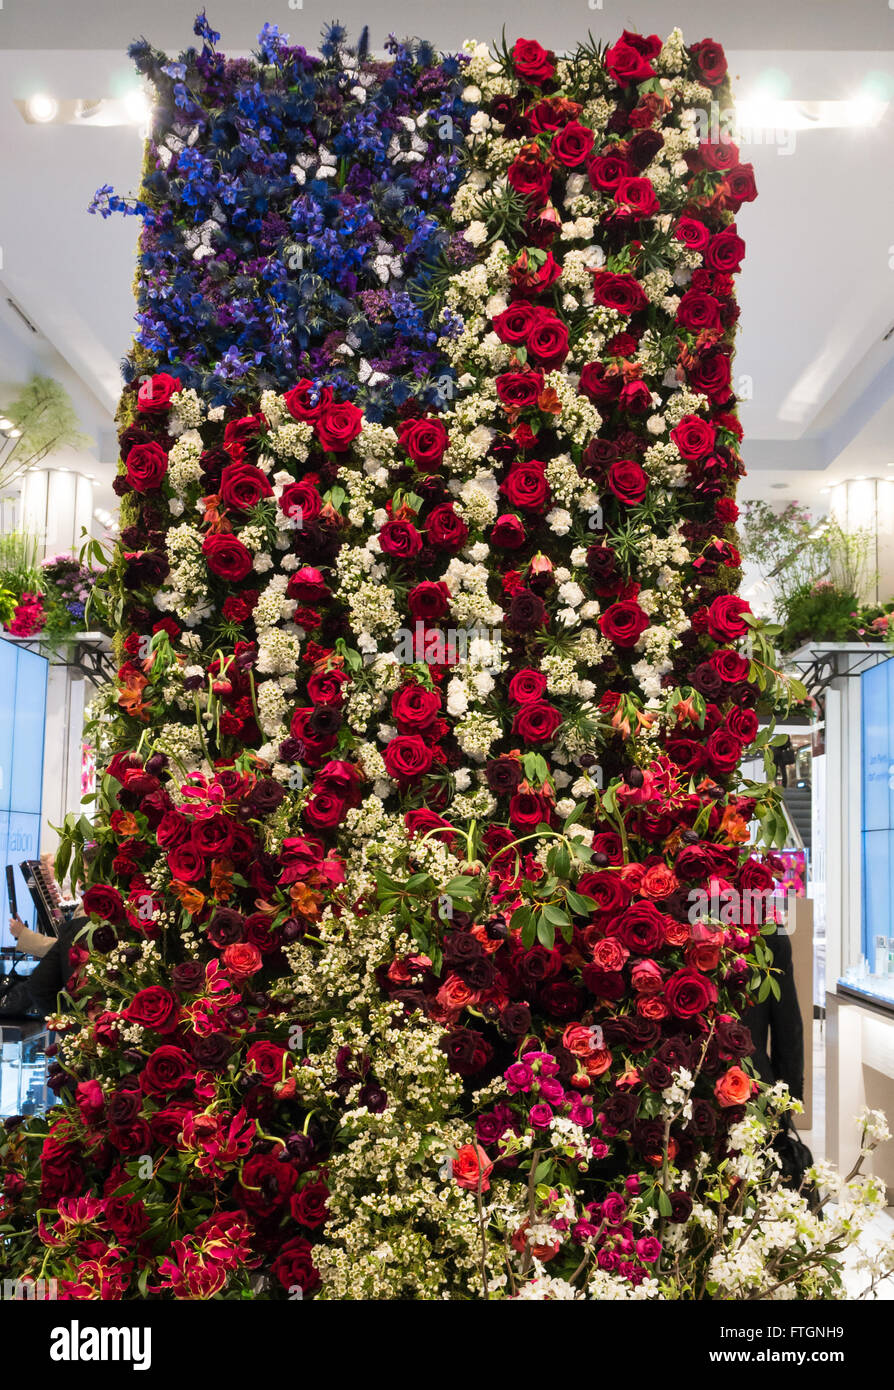 Macys Annual Flower Show The American Flag Composed Of Roses And